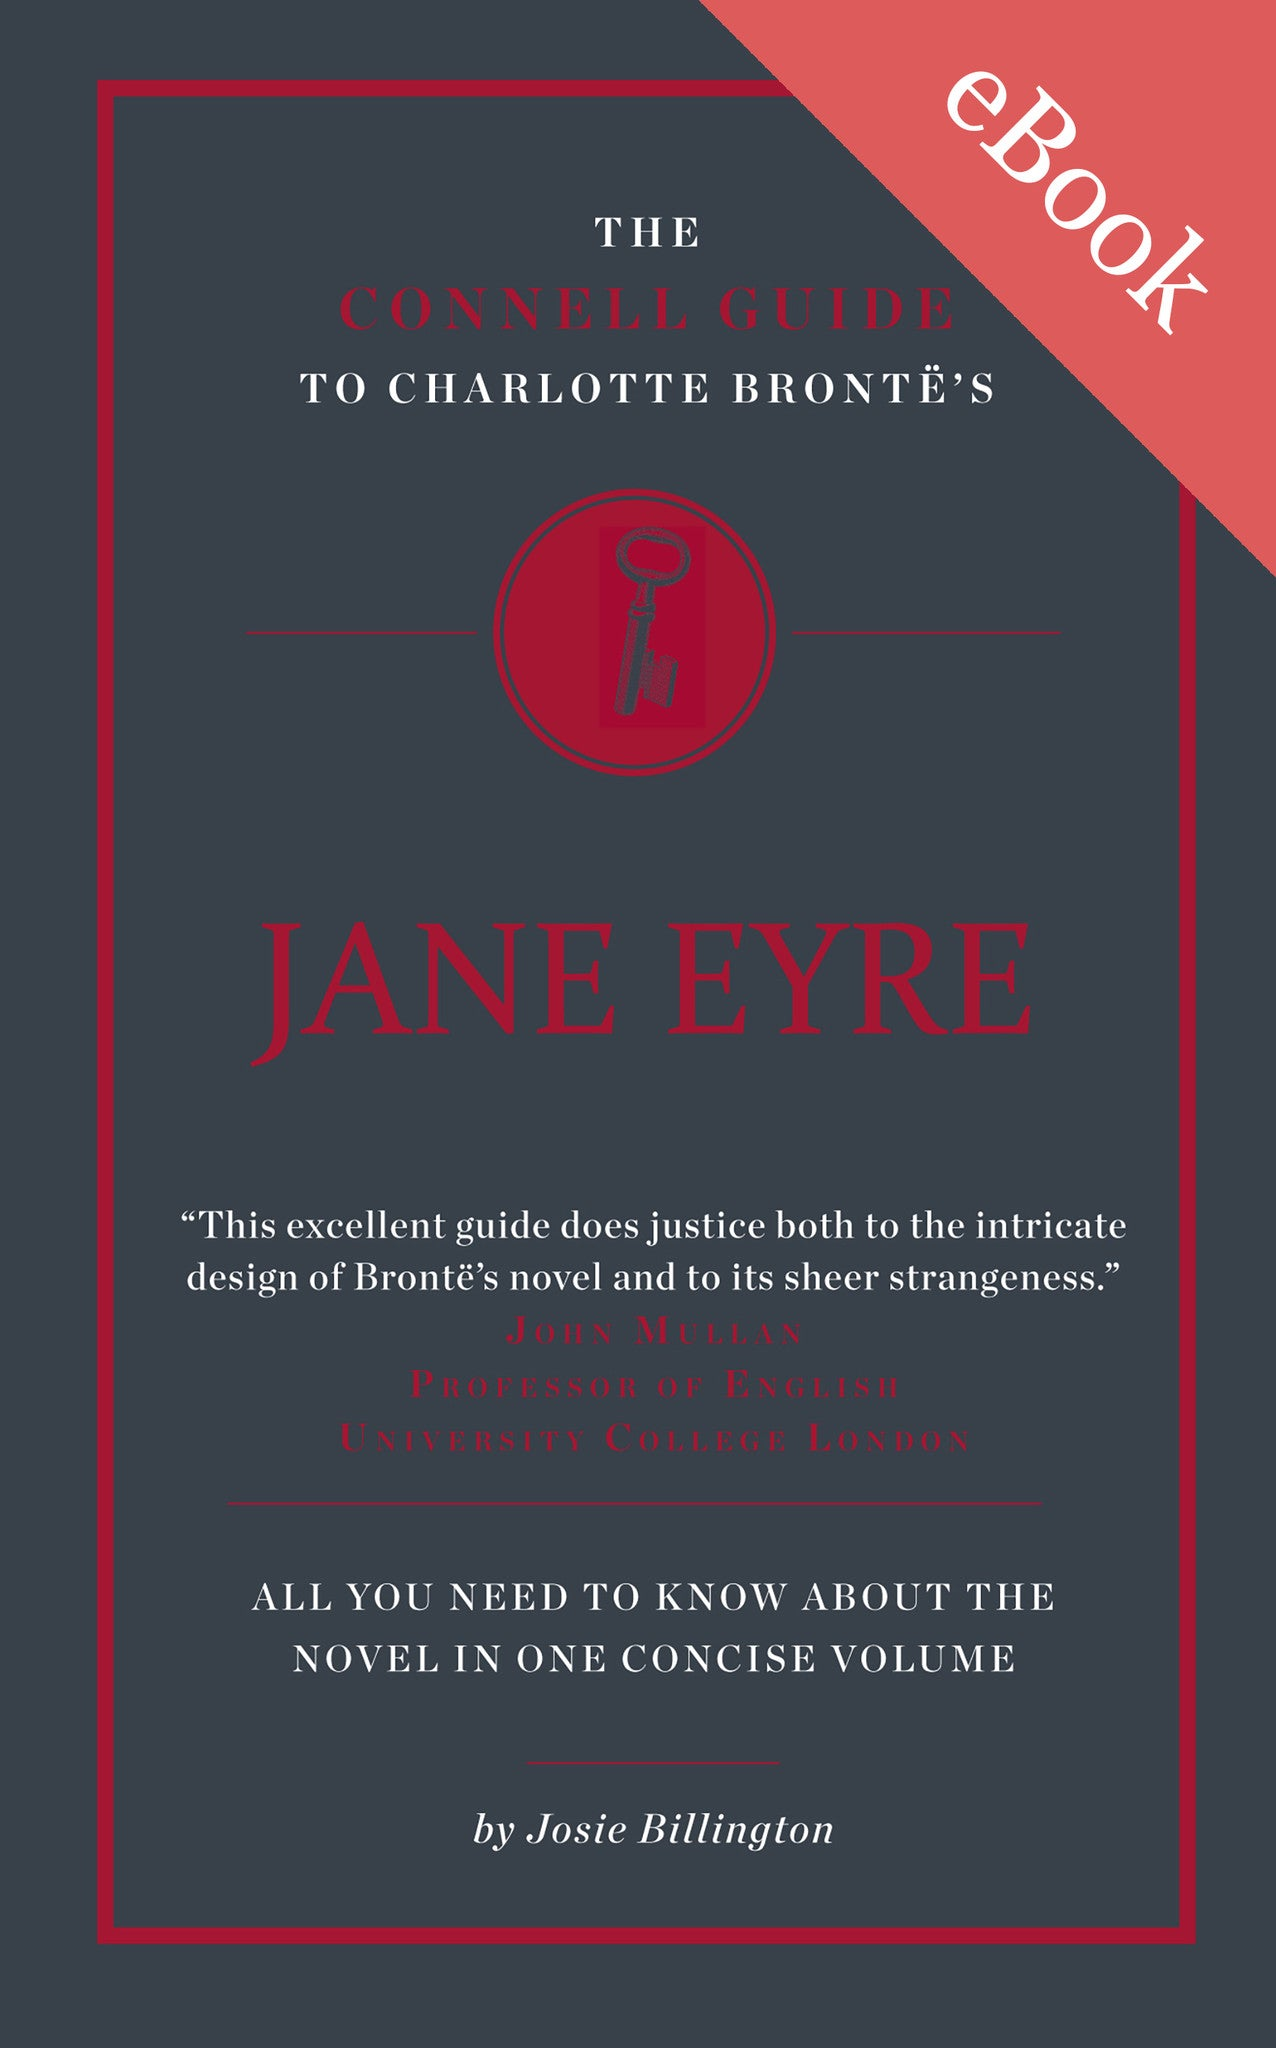 an analysis of an excerpt of charlotte brontes jane eyre Jane eyre by charlotte brontë home / literature / jane eyre / analysis / plot analysis   jane is a poor orphan girl with nothing to help her in the world but a few nasty relatives and her education as a teacher of music, drawing, and french.